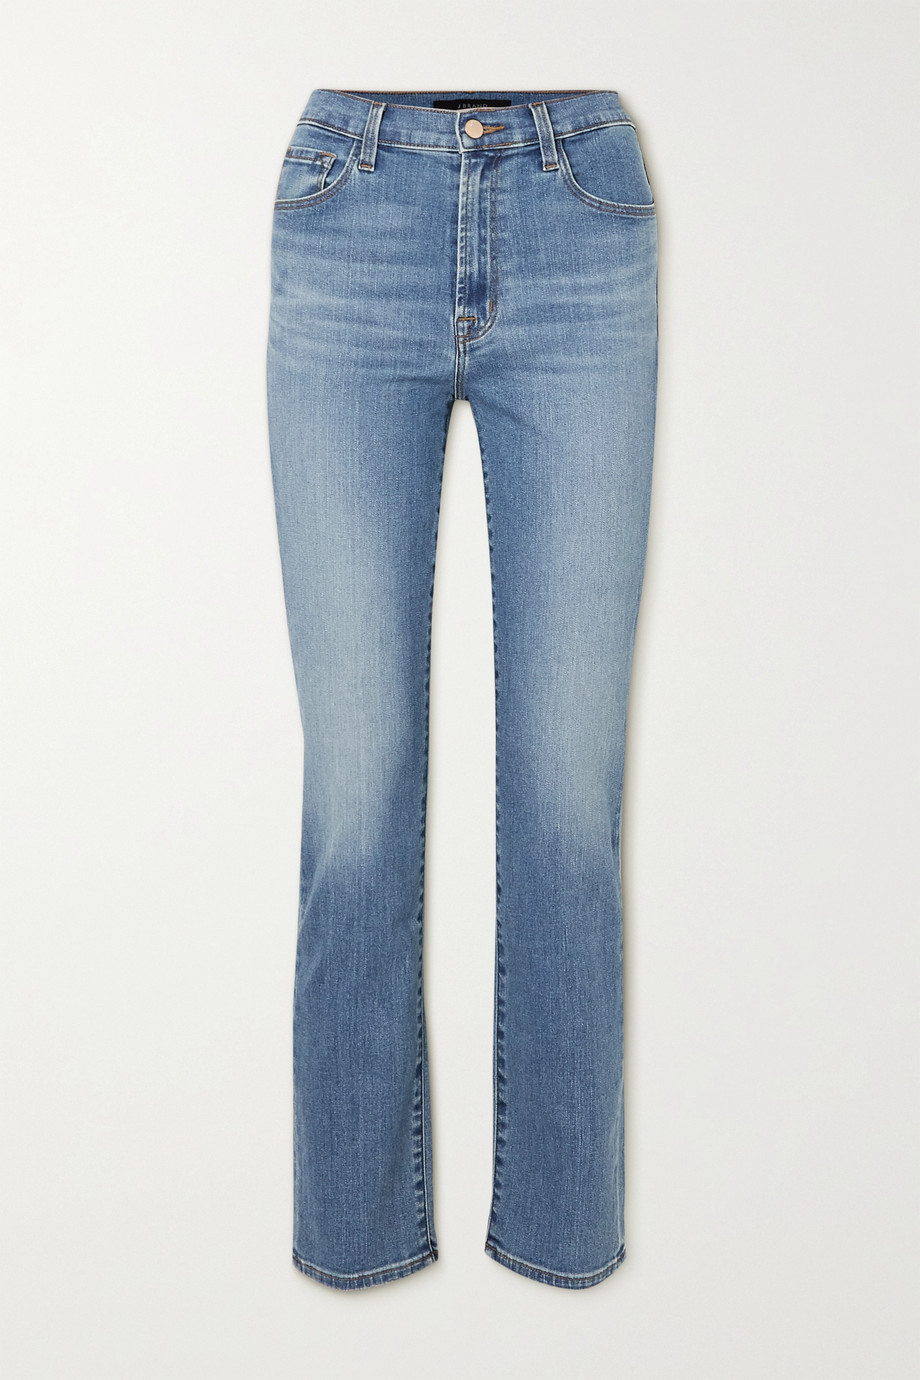 J Brand Teagan high-rise straight-leg jeans